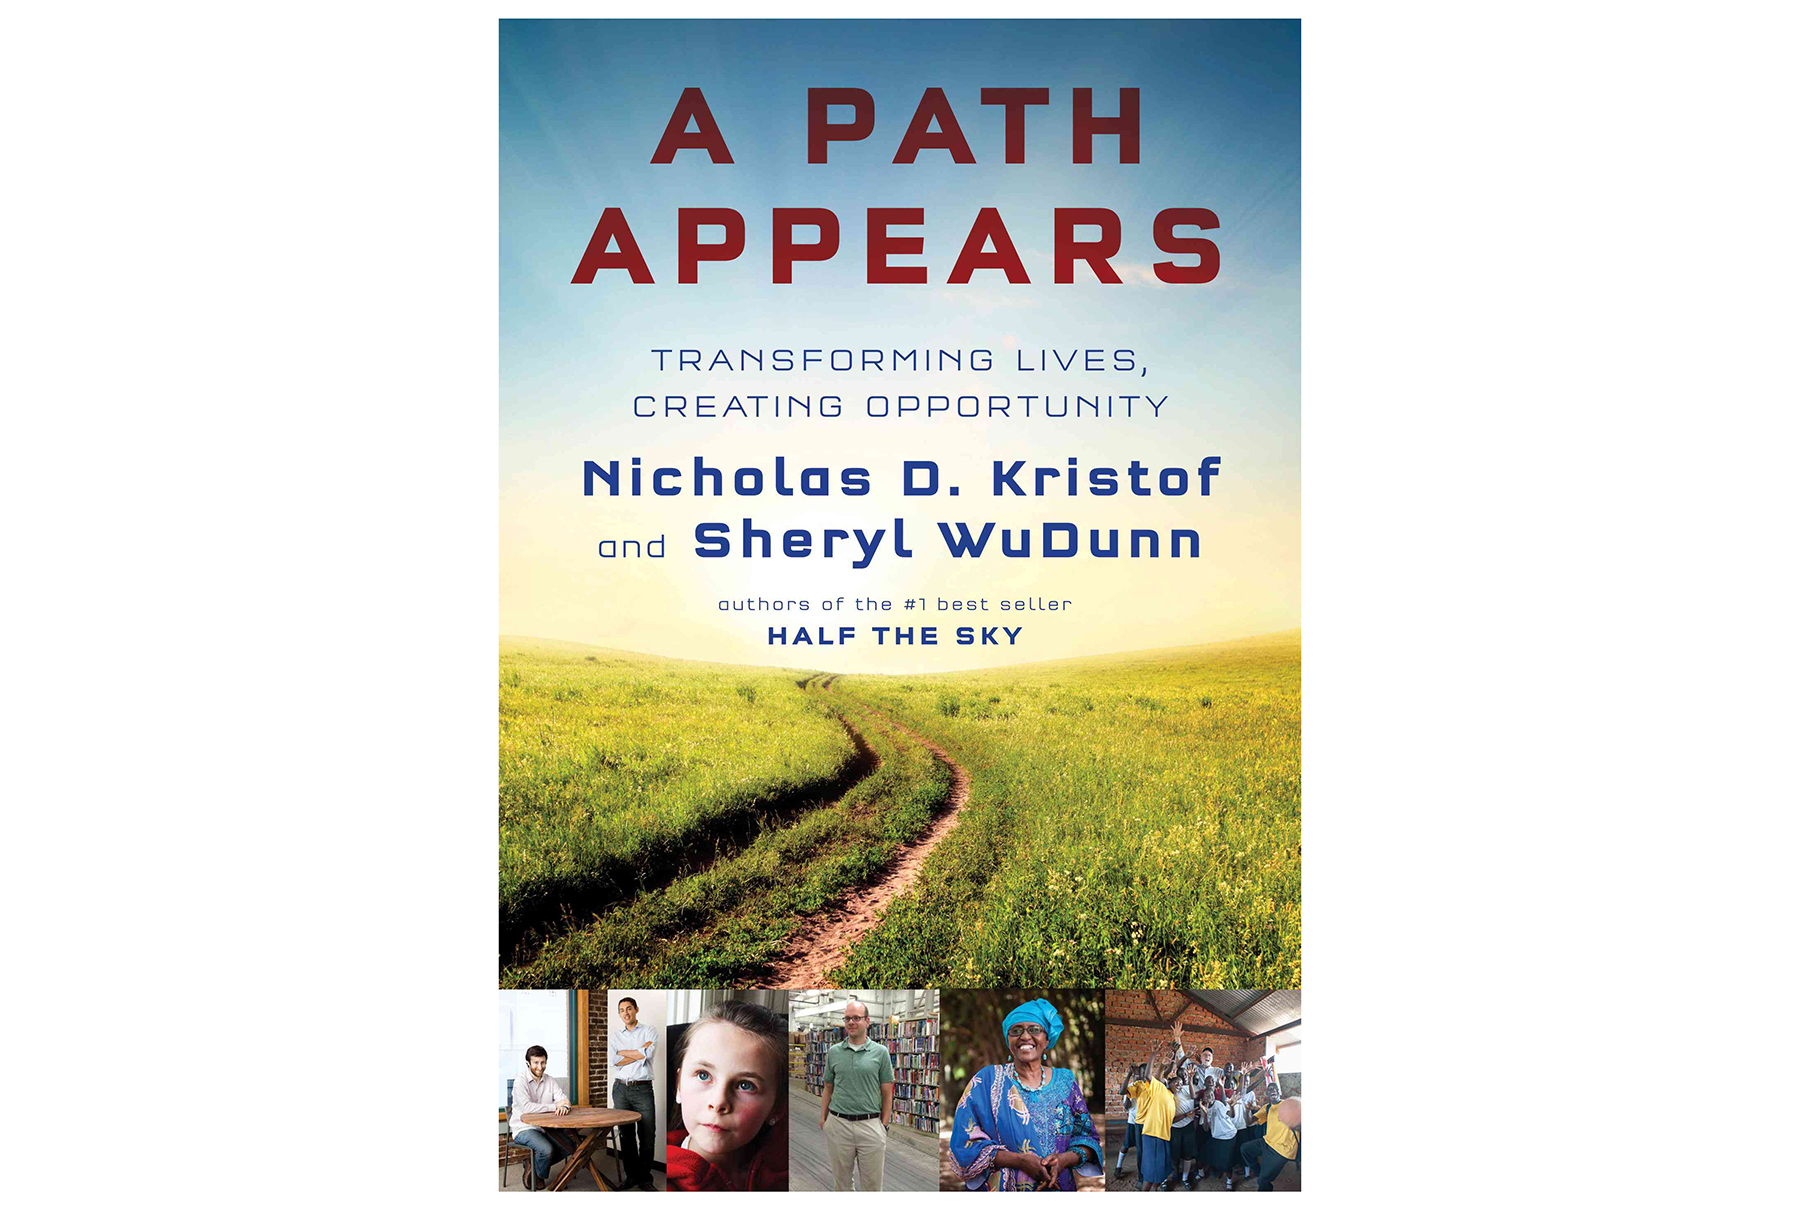 Kristin Davis: A Path Appears, Nicholas D. Kristof and Sheryl WuDunn